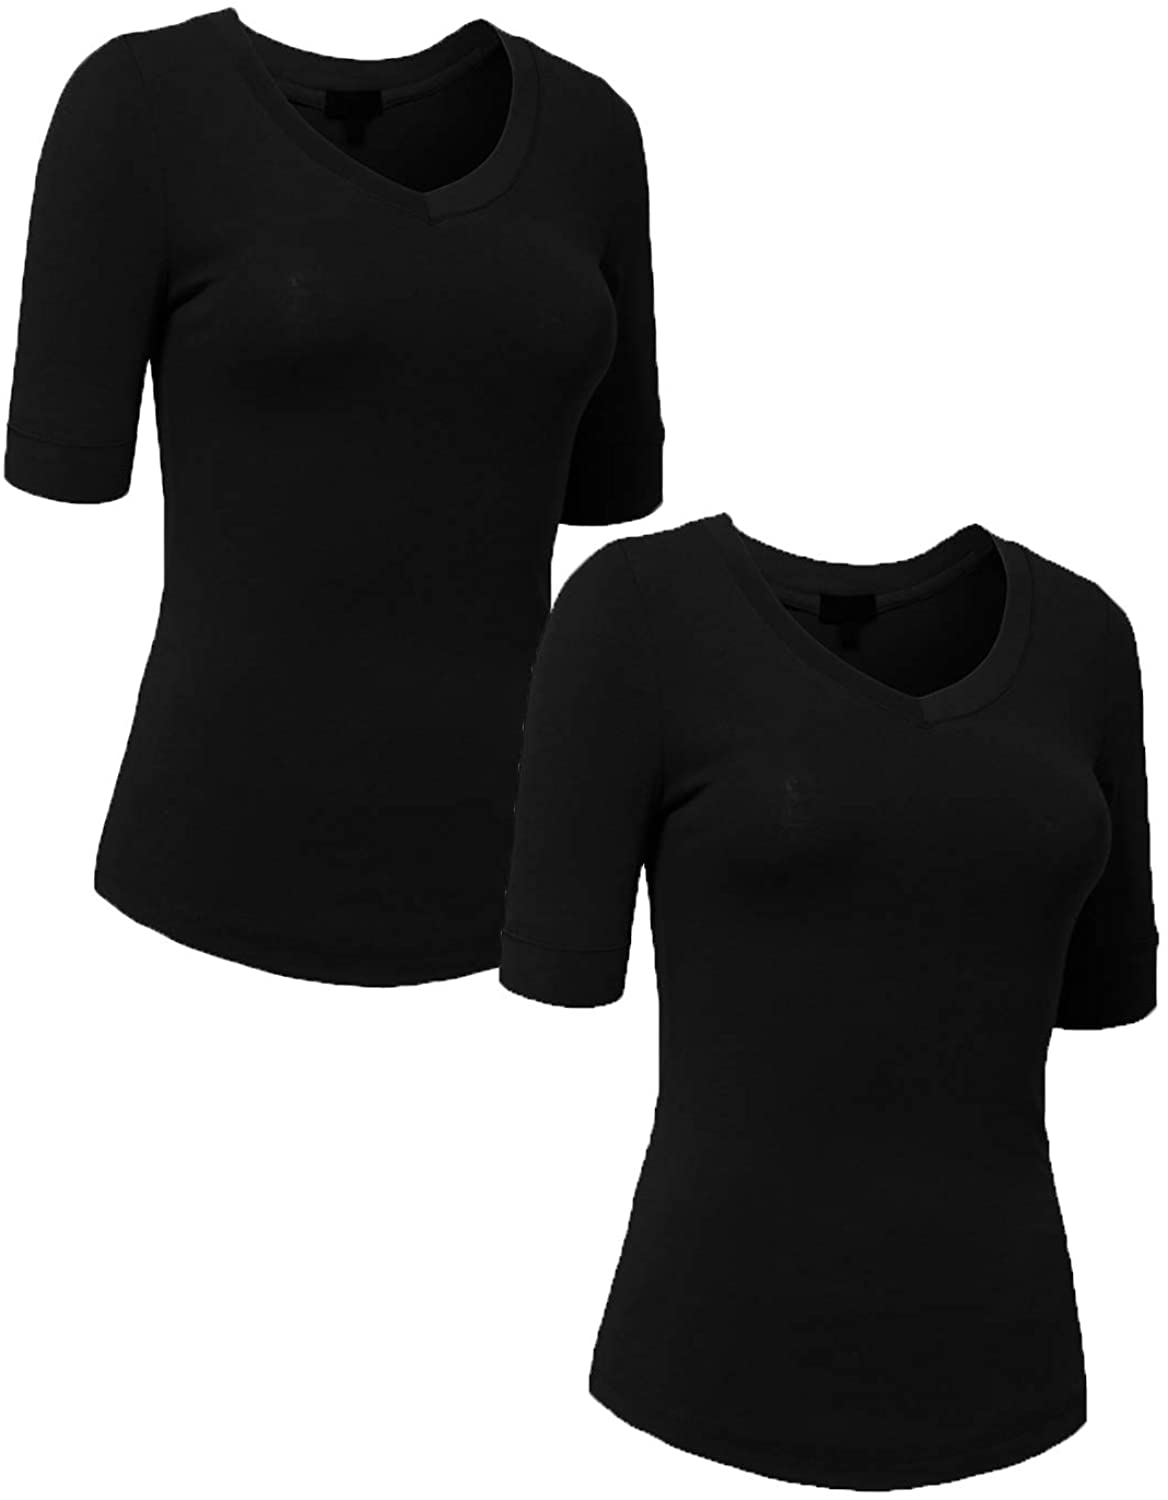 NE PEOPLE Women's Basic 3/4 Elbow Half Length Sleeve V-Neck line T-Shirts (2 Set)